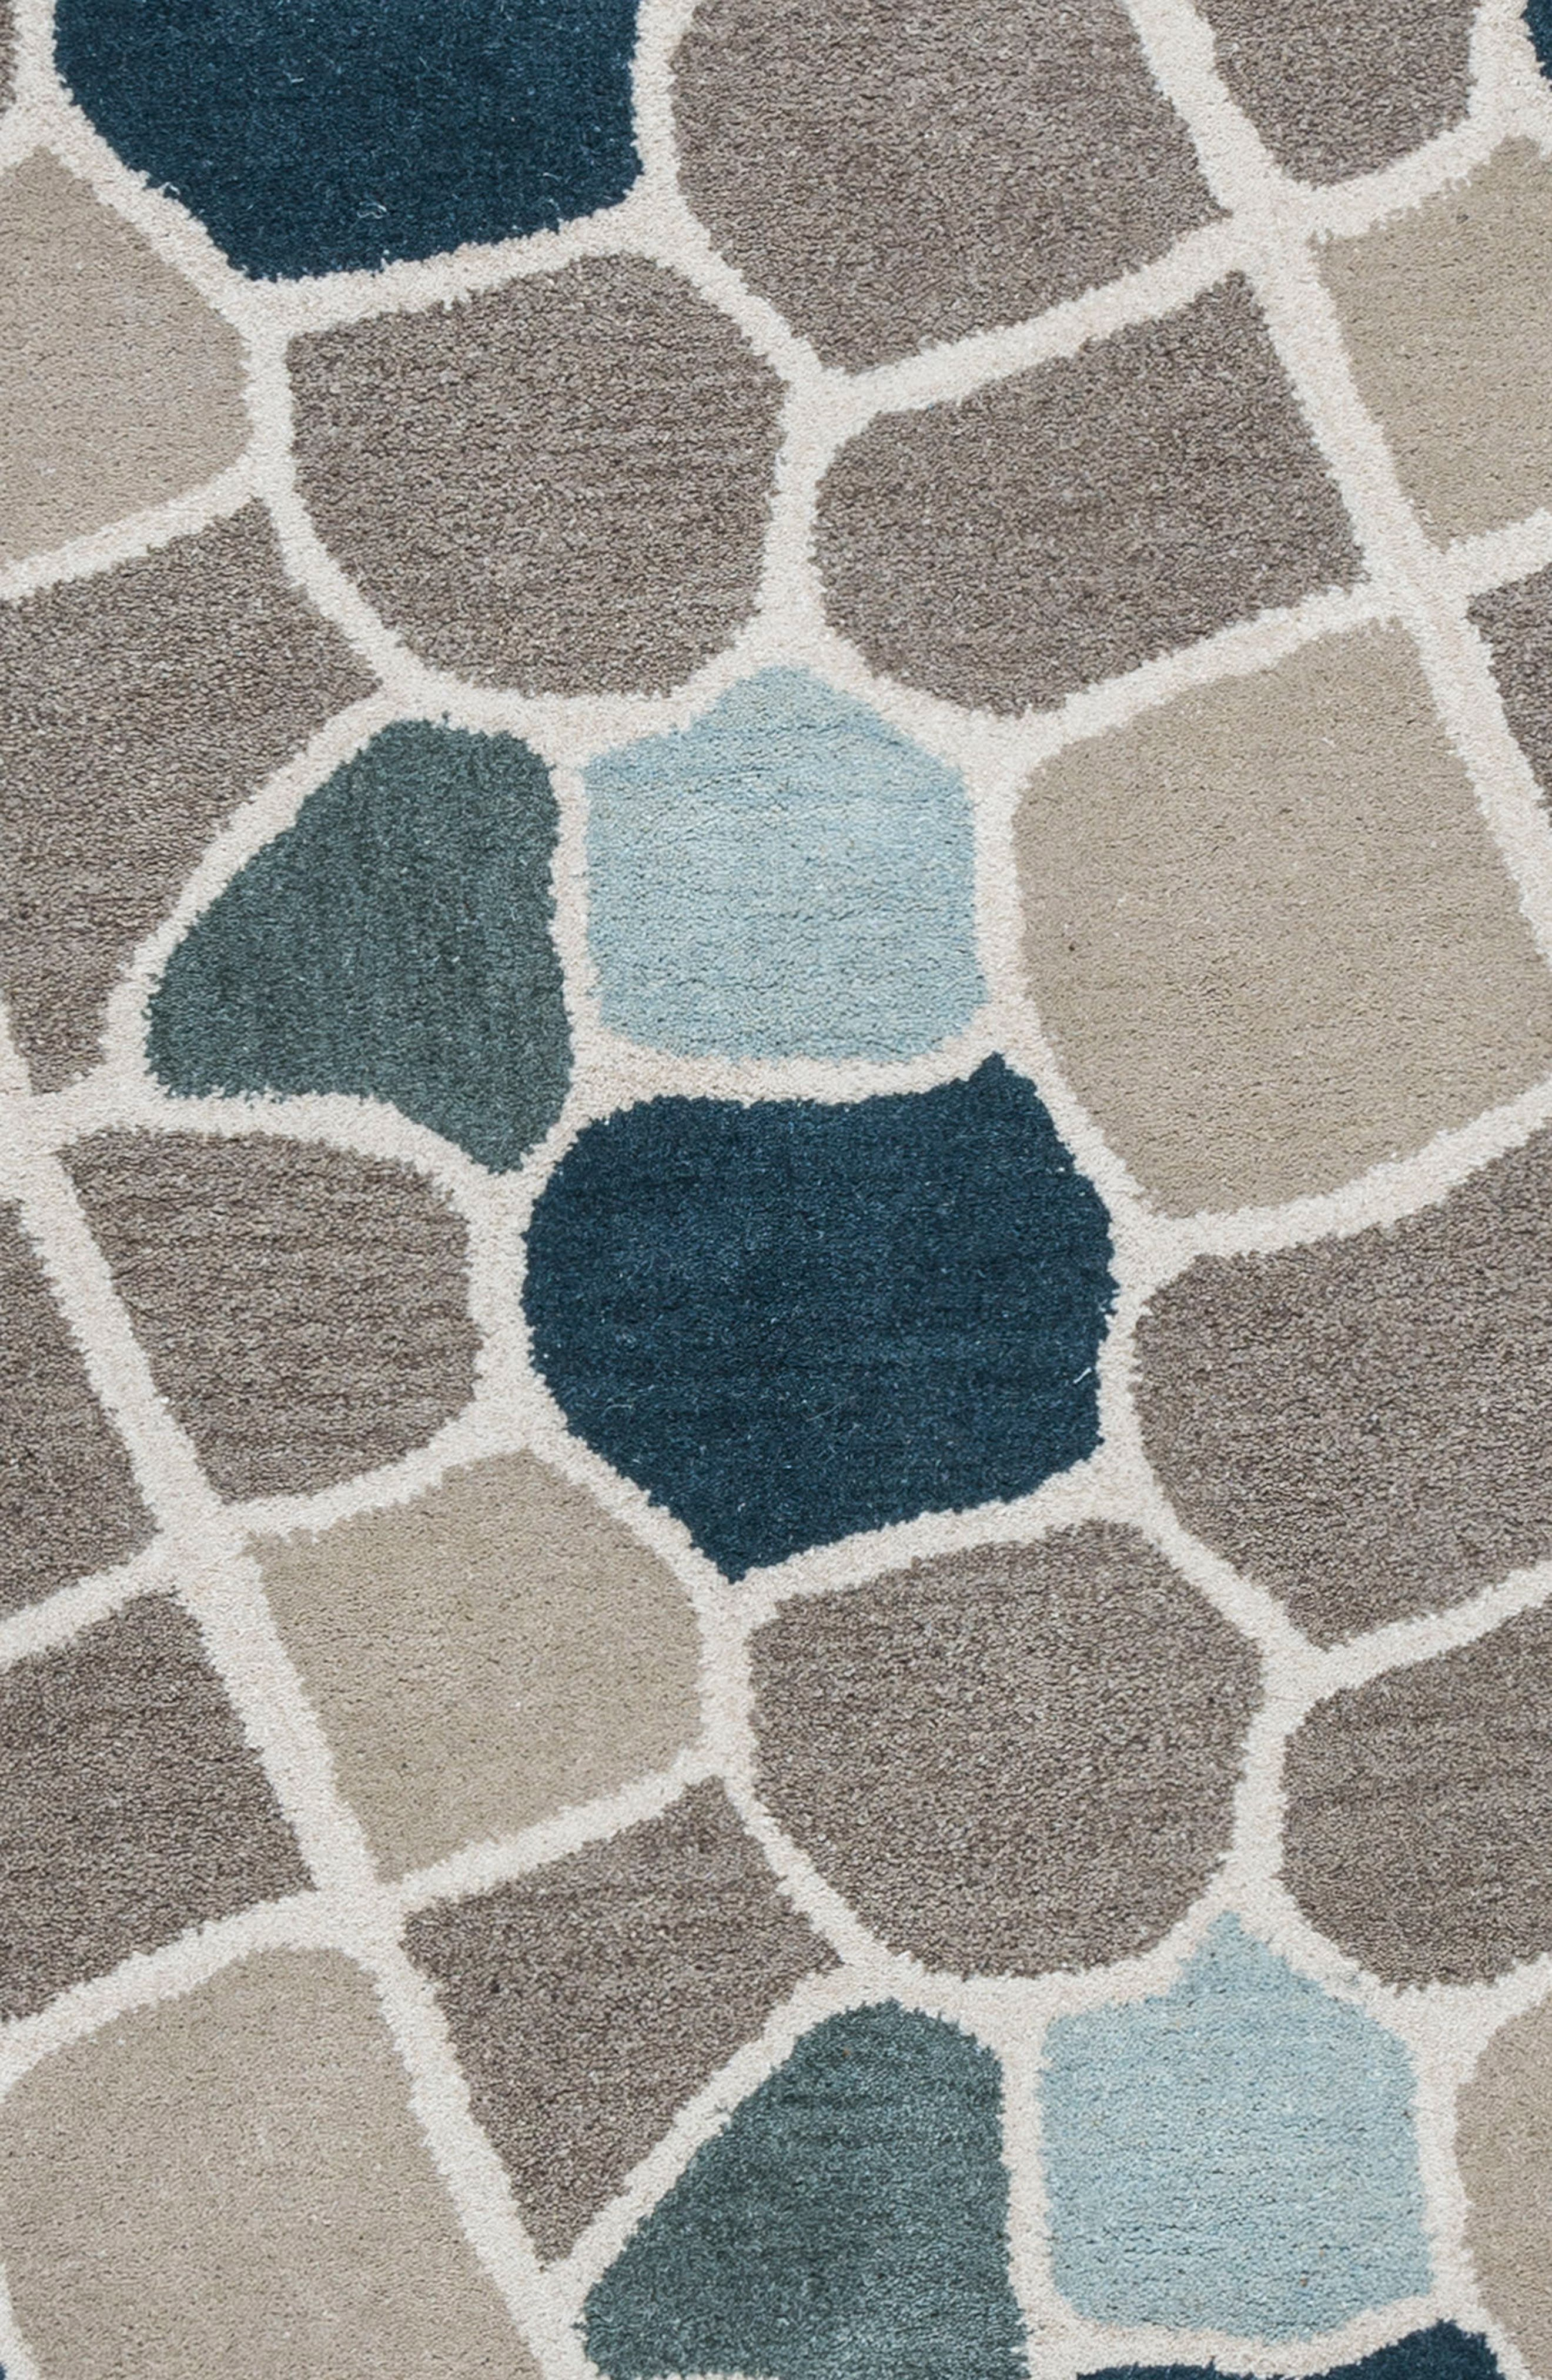 Cobble Geo Hand Tufted Wool Area Rug,                             Alternate thumbnail 6, color,                             020